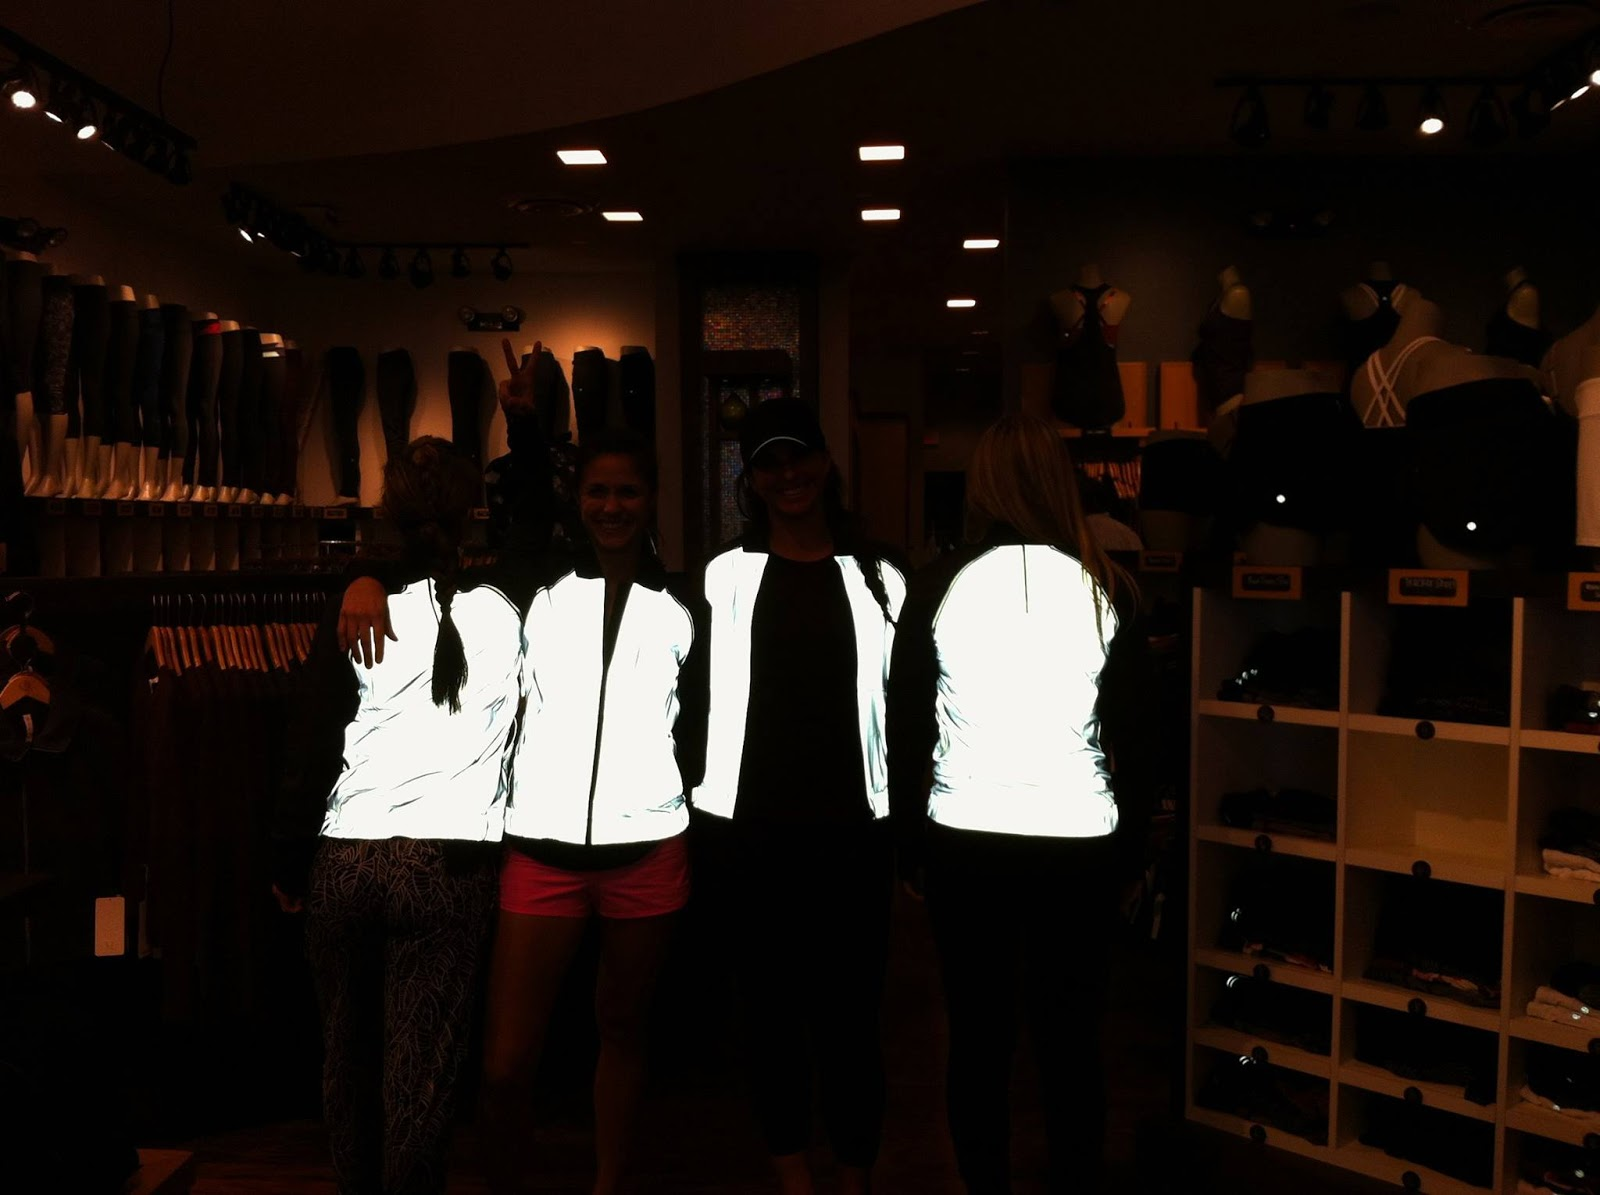 lululemon bright bomber jacket lit up